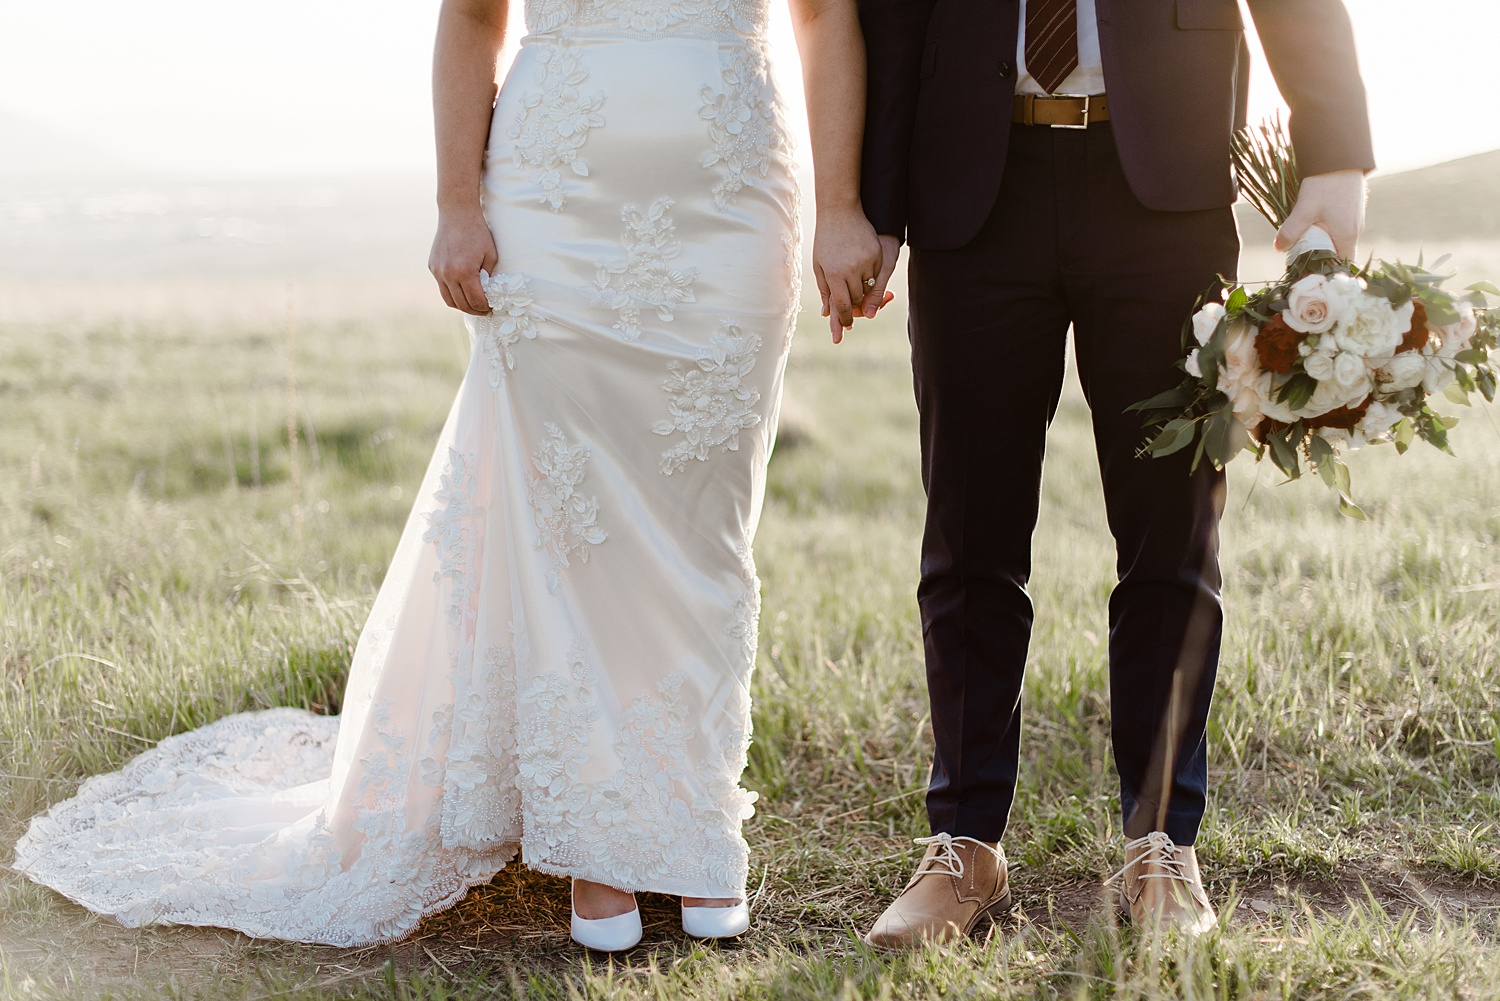 Zandra Barriga Photo - Dallas + Megan Green Hills Bridals_0014.jpg